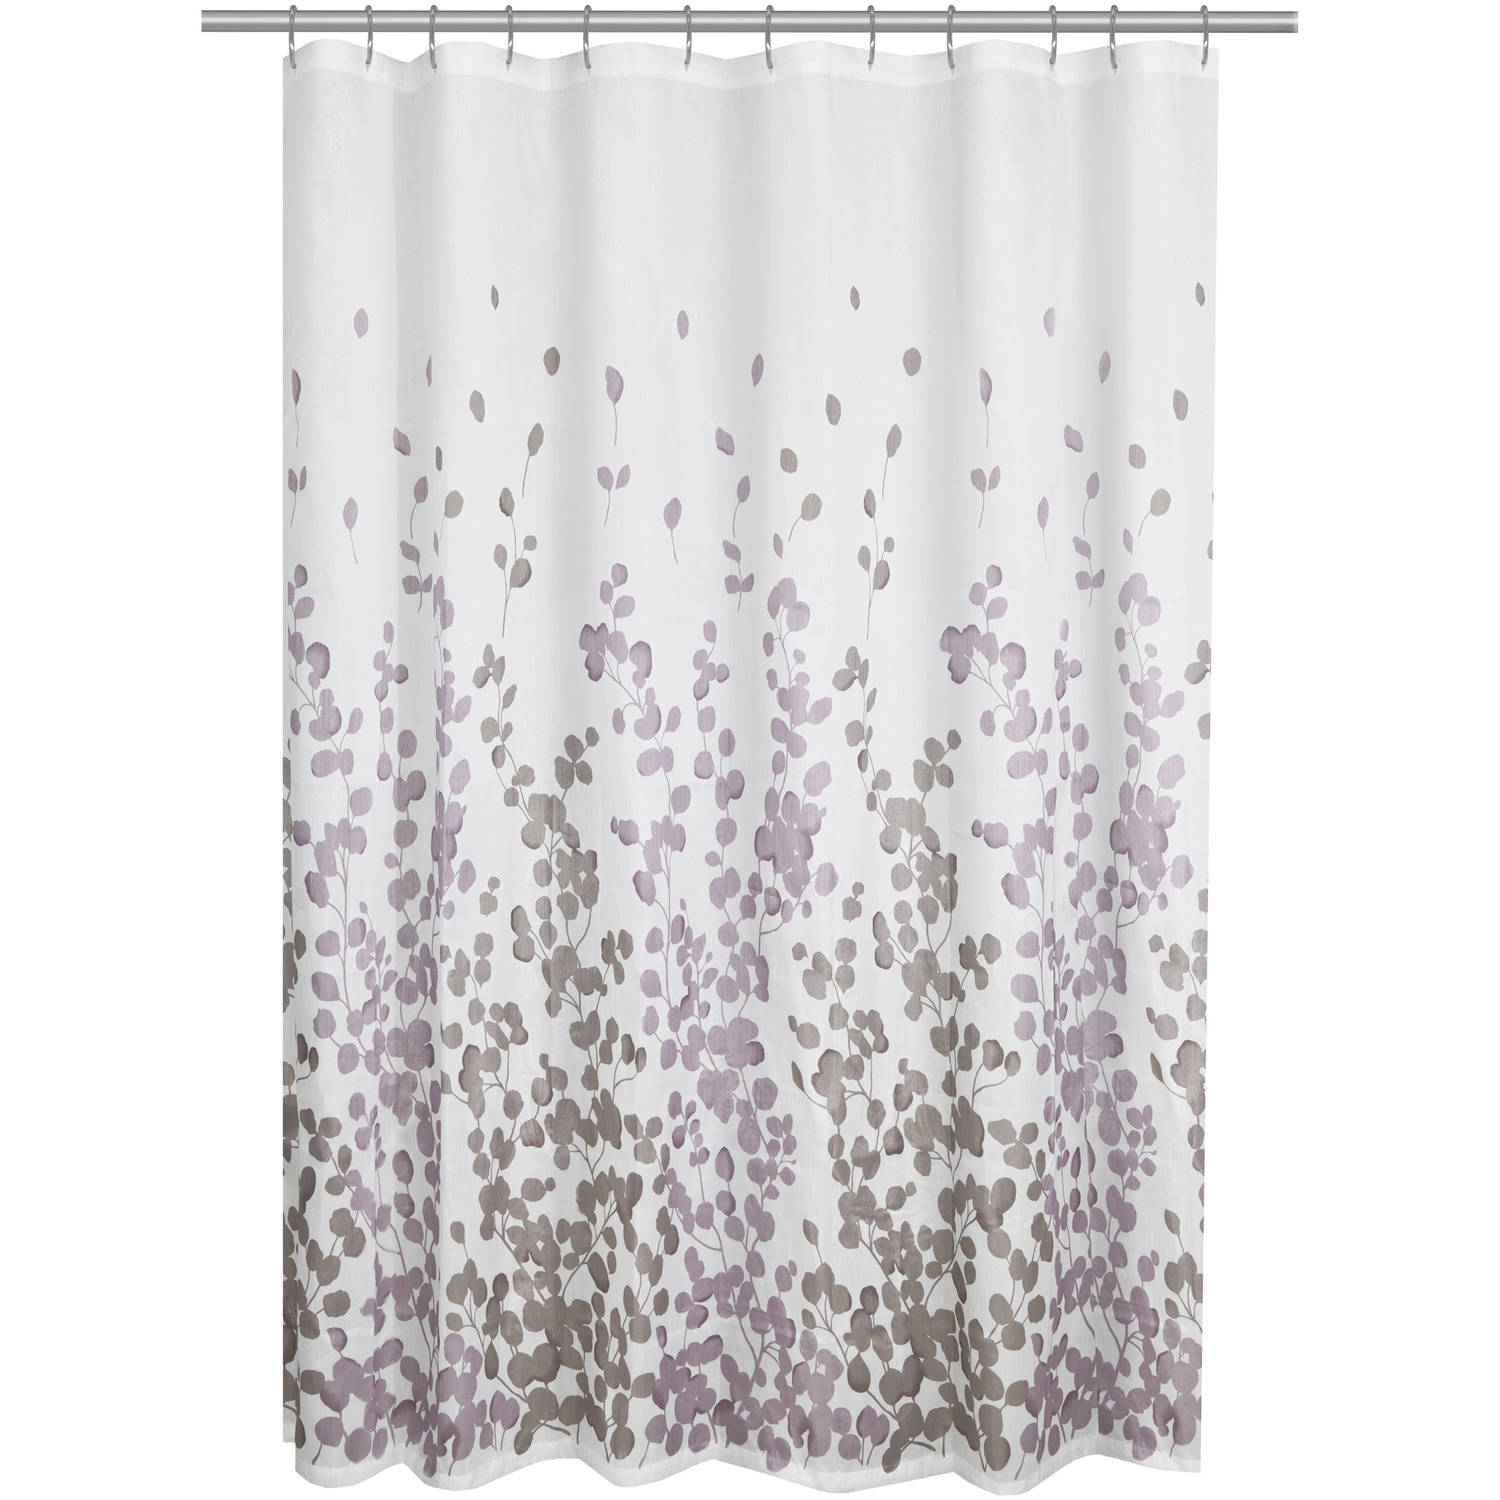 Purple Gray And White Shower Curtain Curtain Menzilperde Net